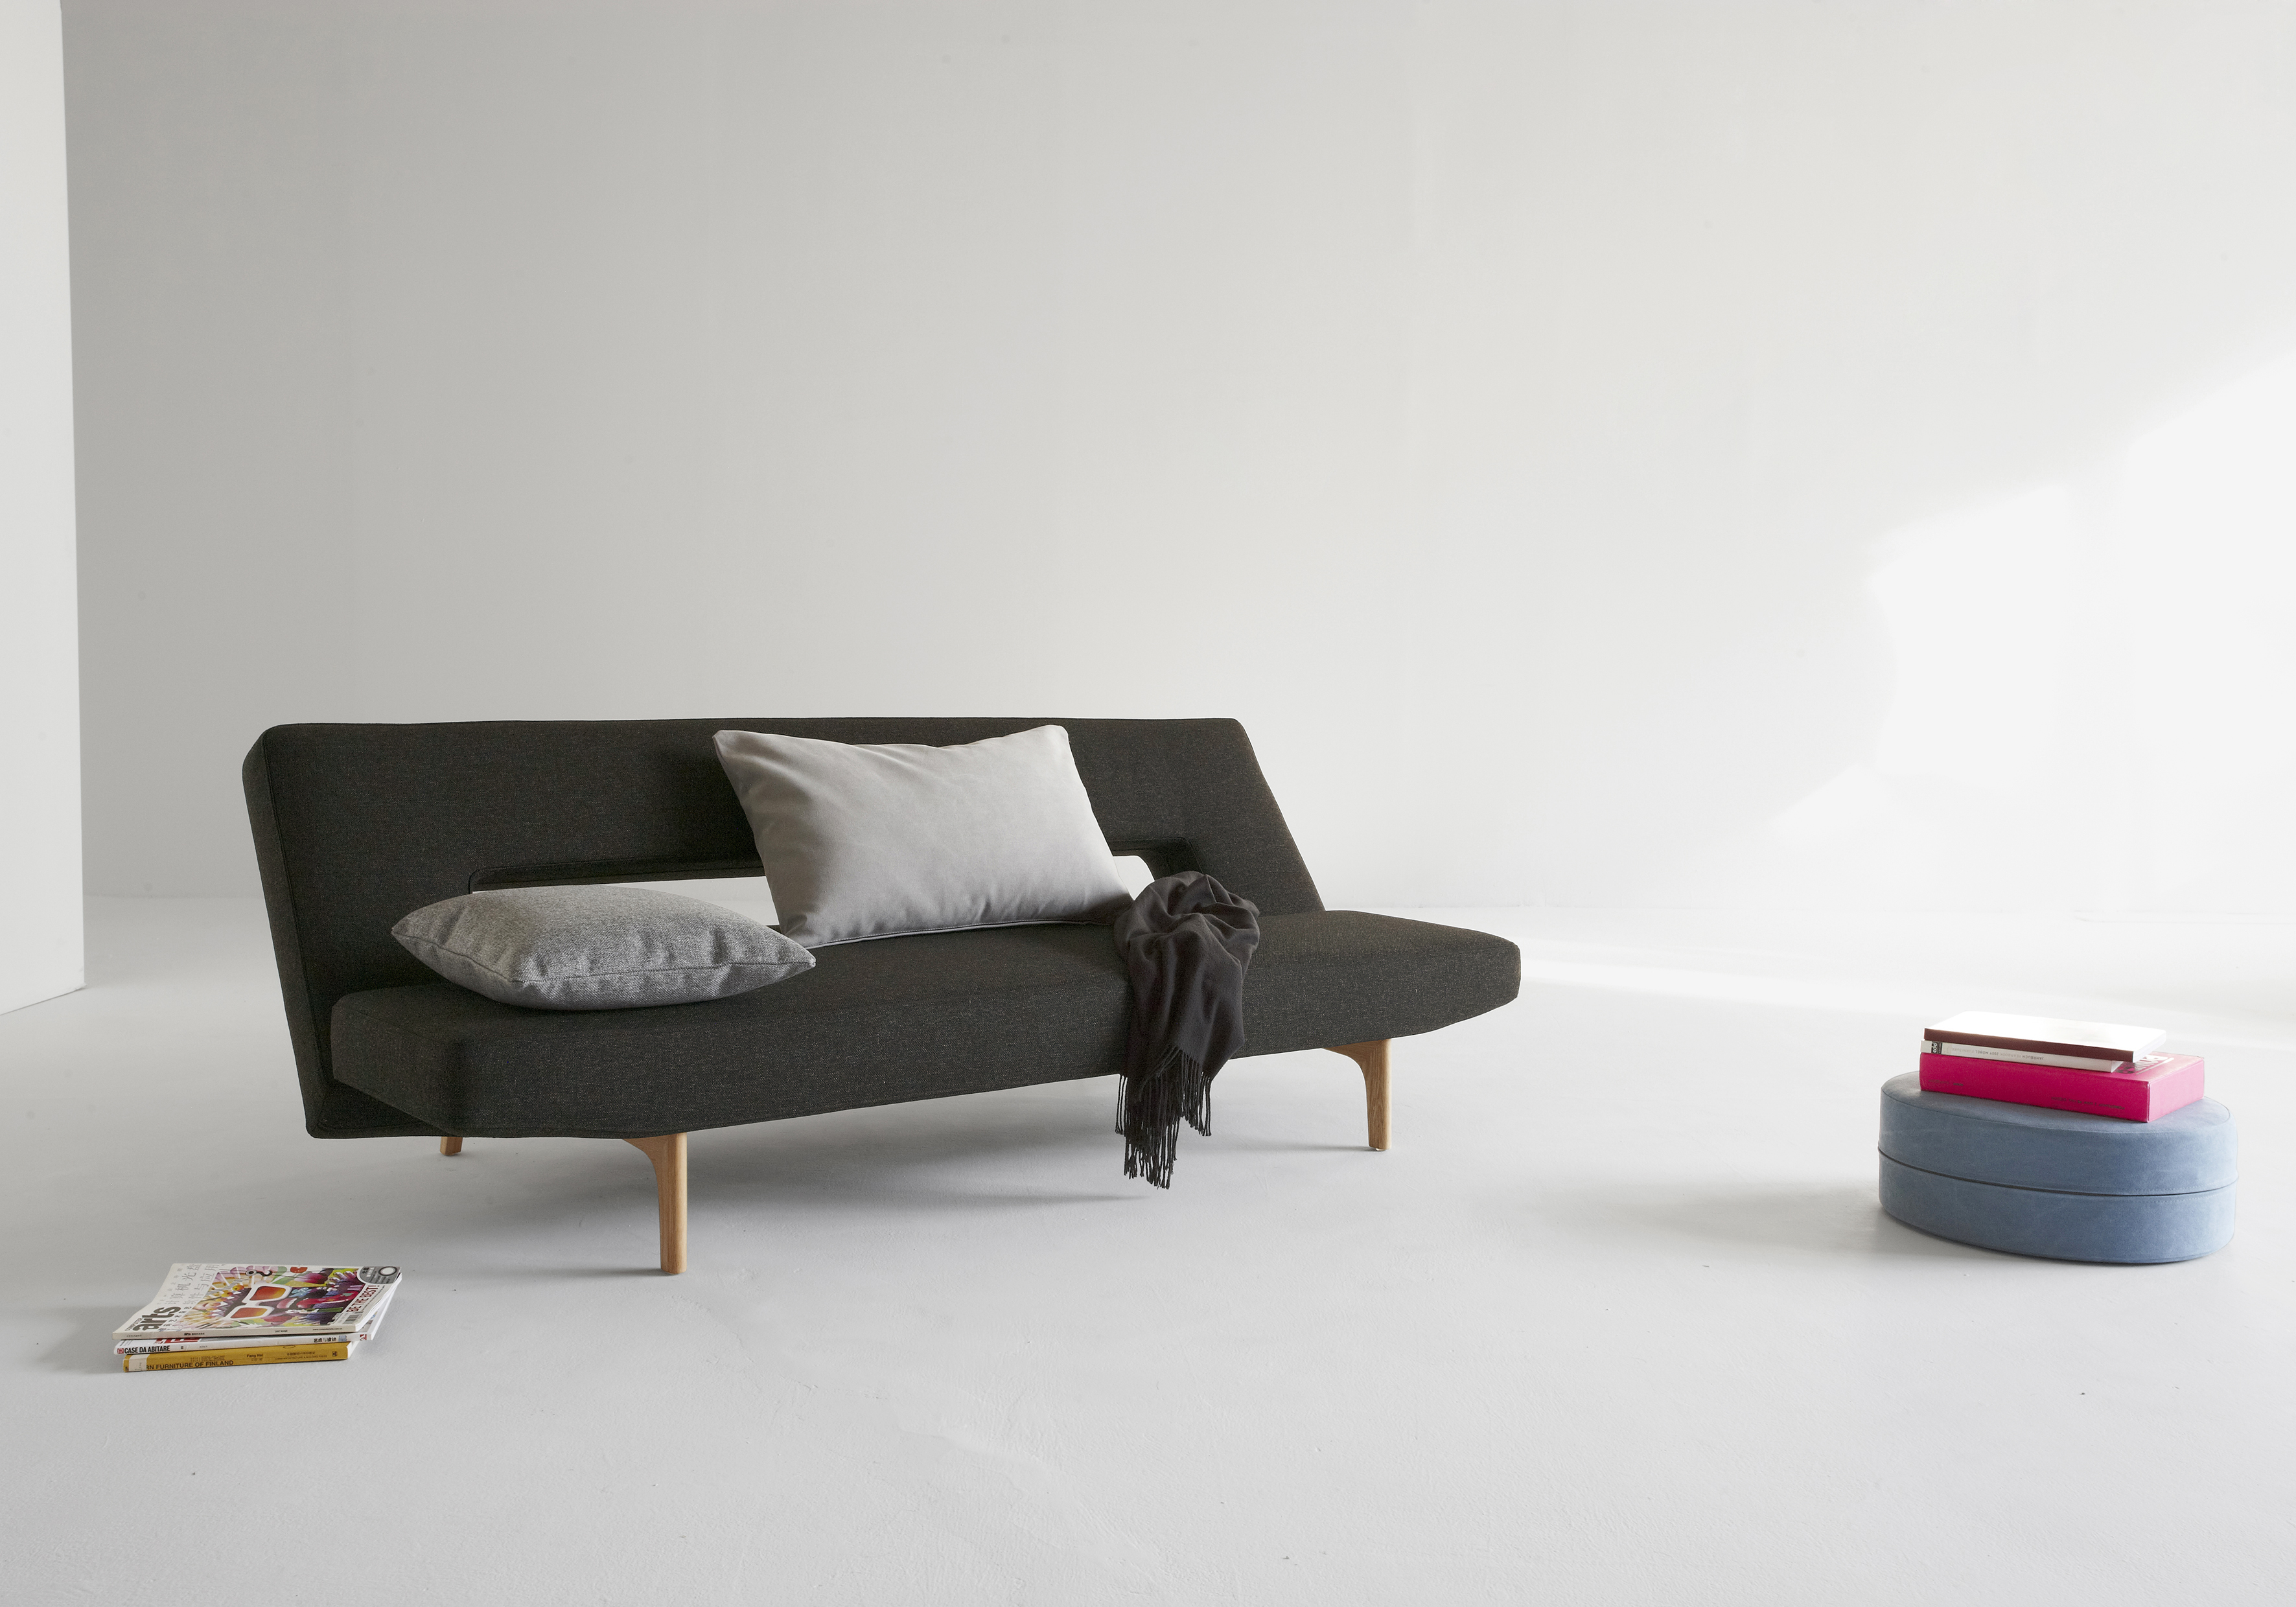 Contemporary Dark Brown Or Grey Fabric Sofa Bed With Wood